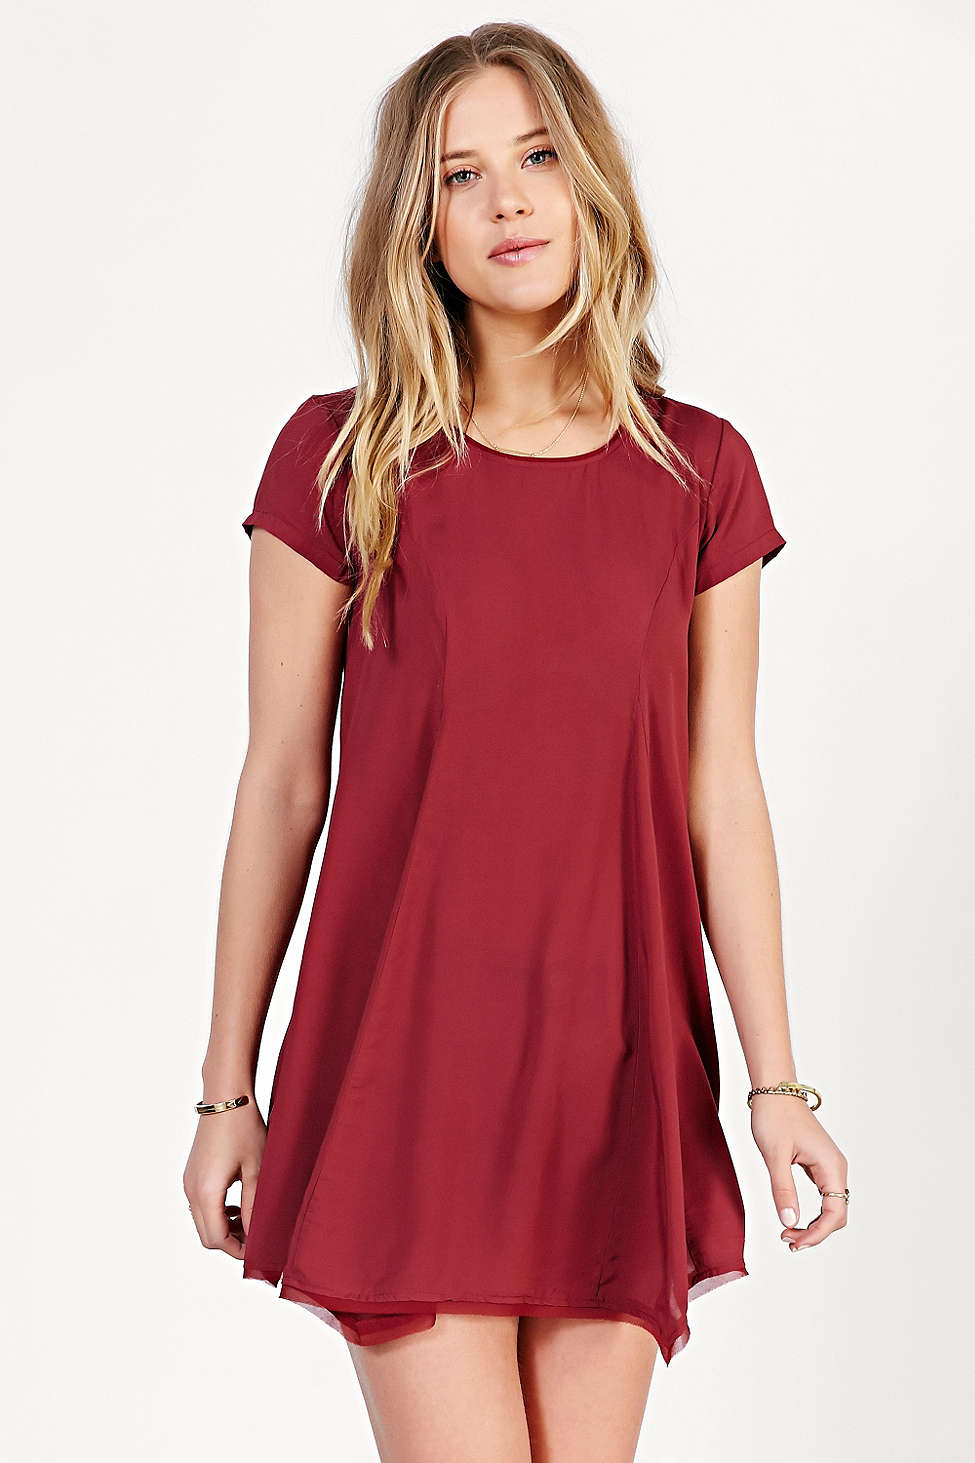 Urban Outfitters, Silence + Noise Witchy T-Shirt Dress, Rust